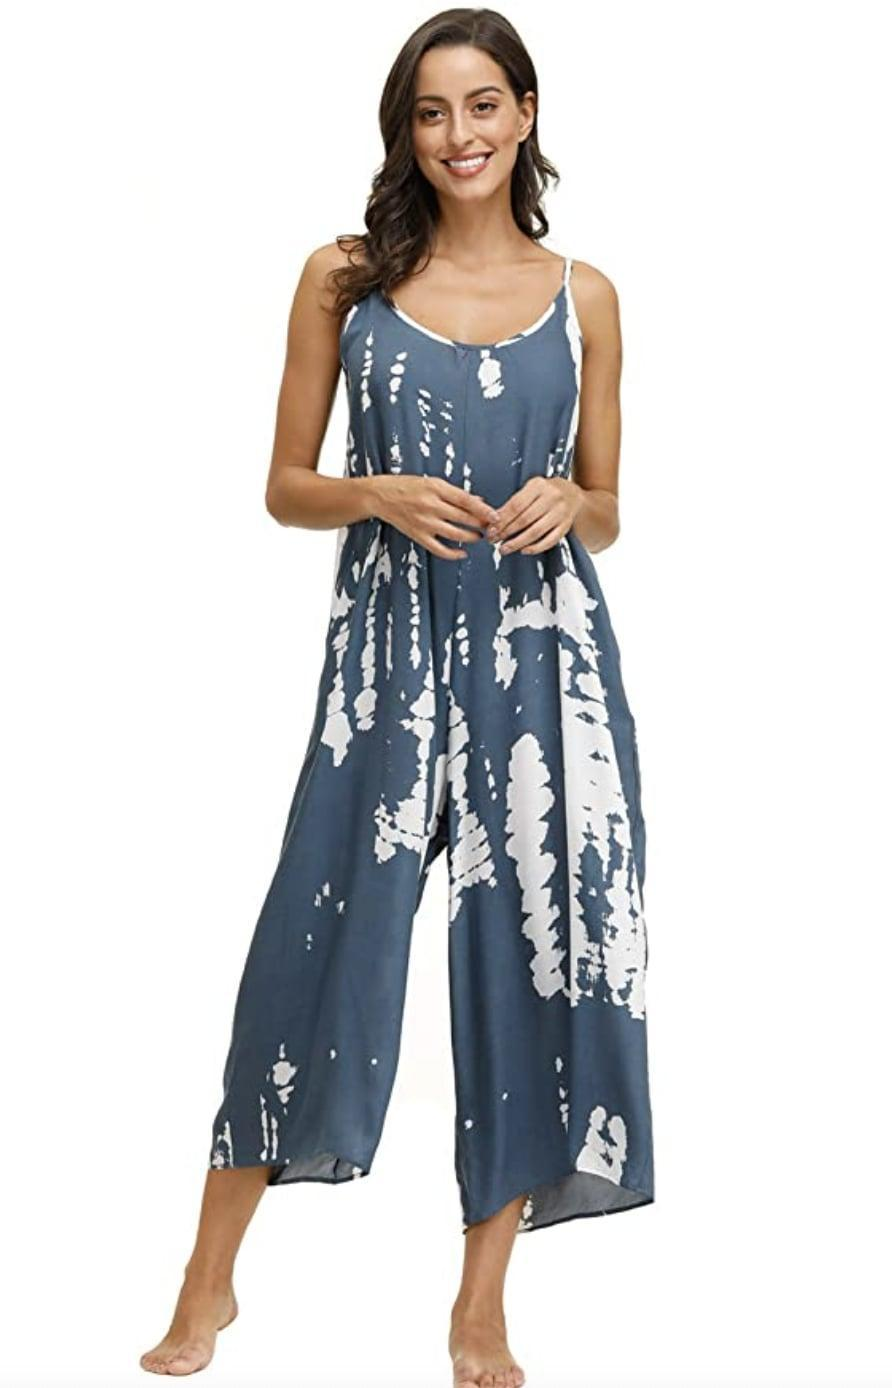 <p>Have a beach day coming up? Grab the sunscreen, straw hat, wine cooler, and slip into this eye-catching <span>Wexcen Printed Jumpsuit</span> ($23 - $27). The fabric looks breathable and lightweight, perfect for laying under the sun as you hear the waves crashing.</p>